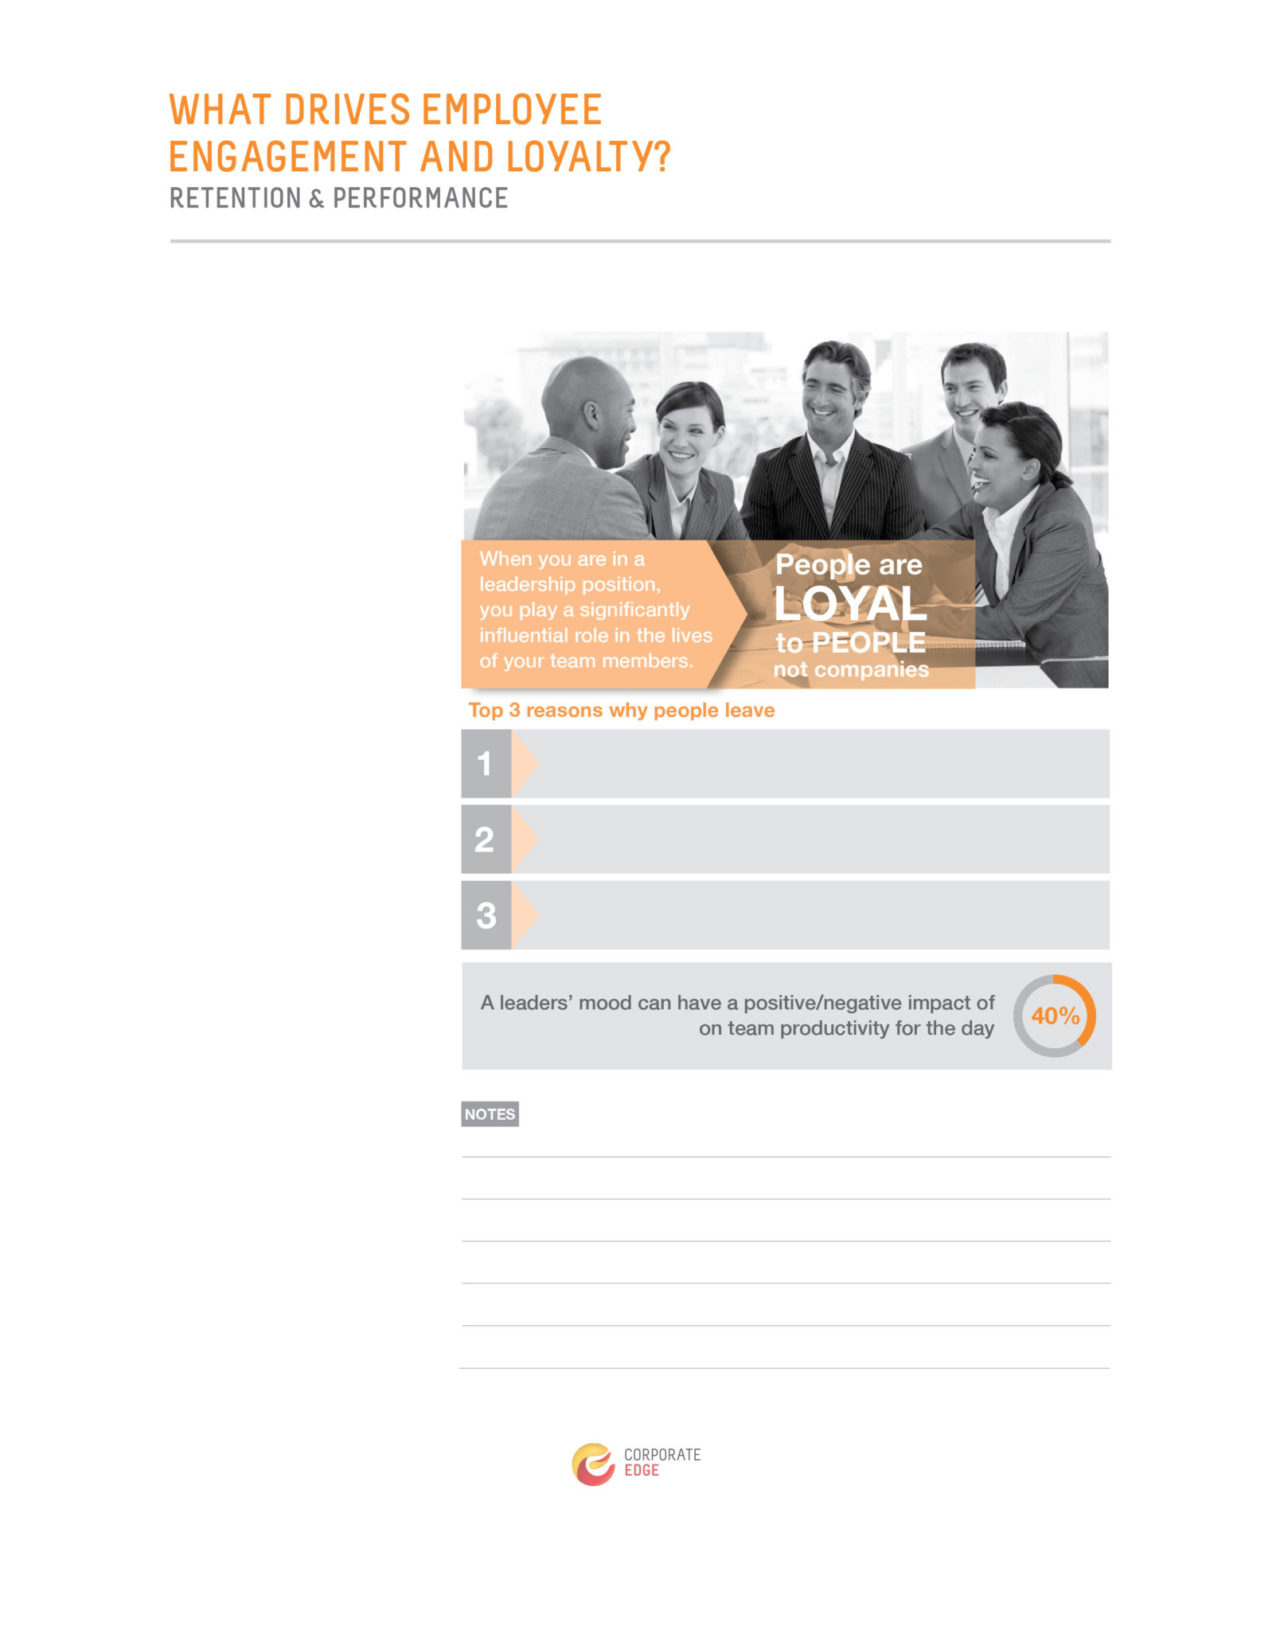 image of workbook - 'What drives employee engagement and loyalty' - as part of Corporate Edge's blended learning corporate coaching program